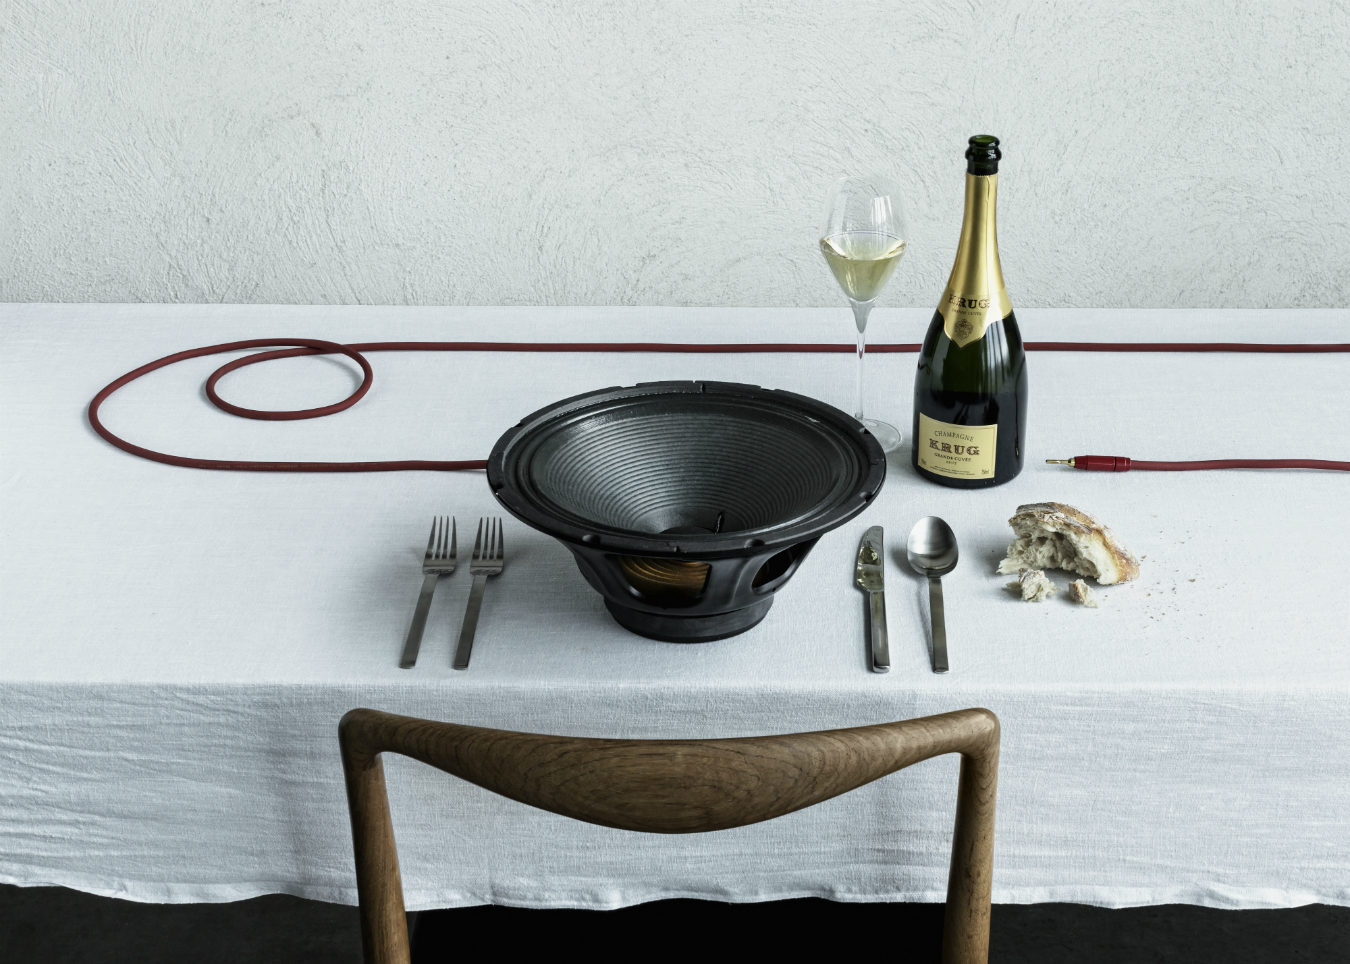 Daily Edit: Krug and Music